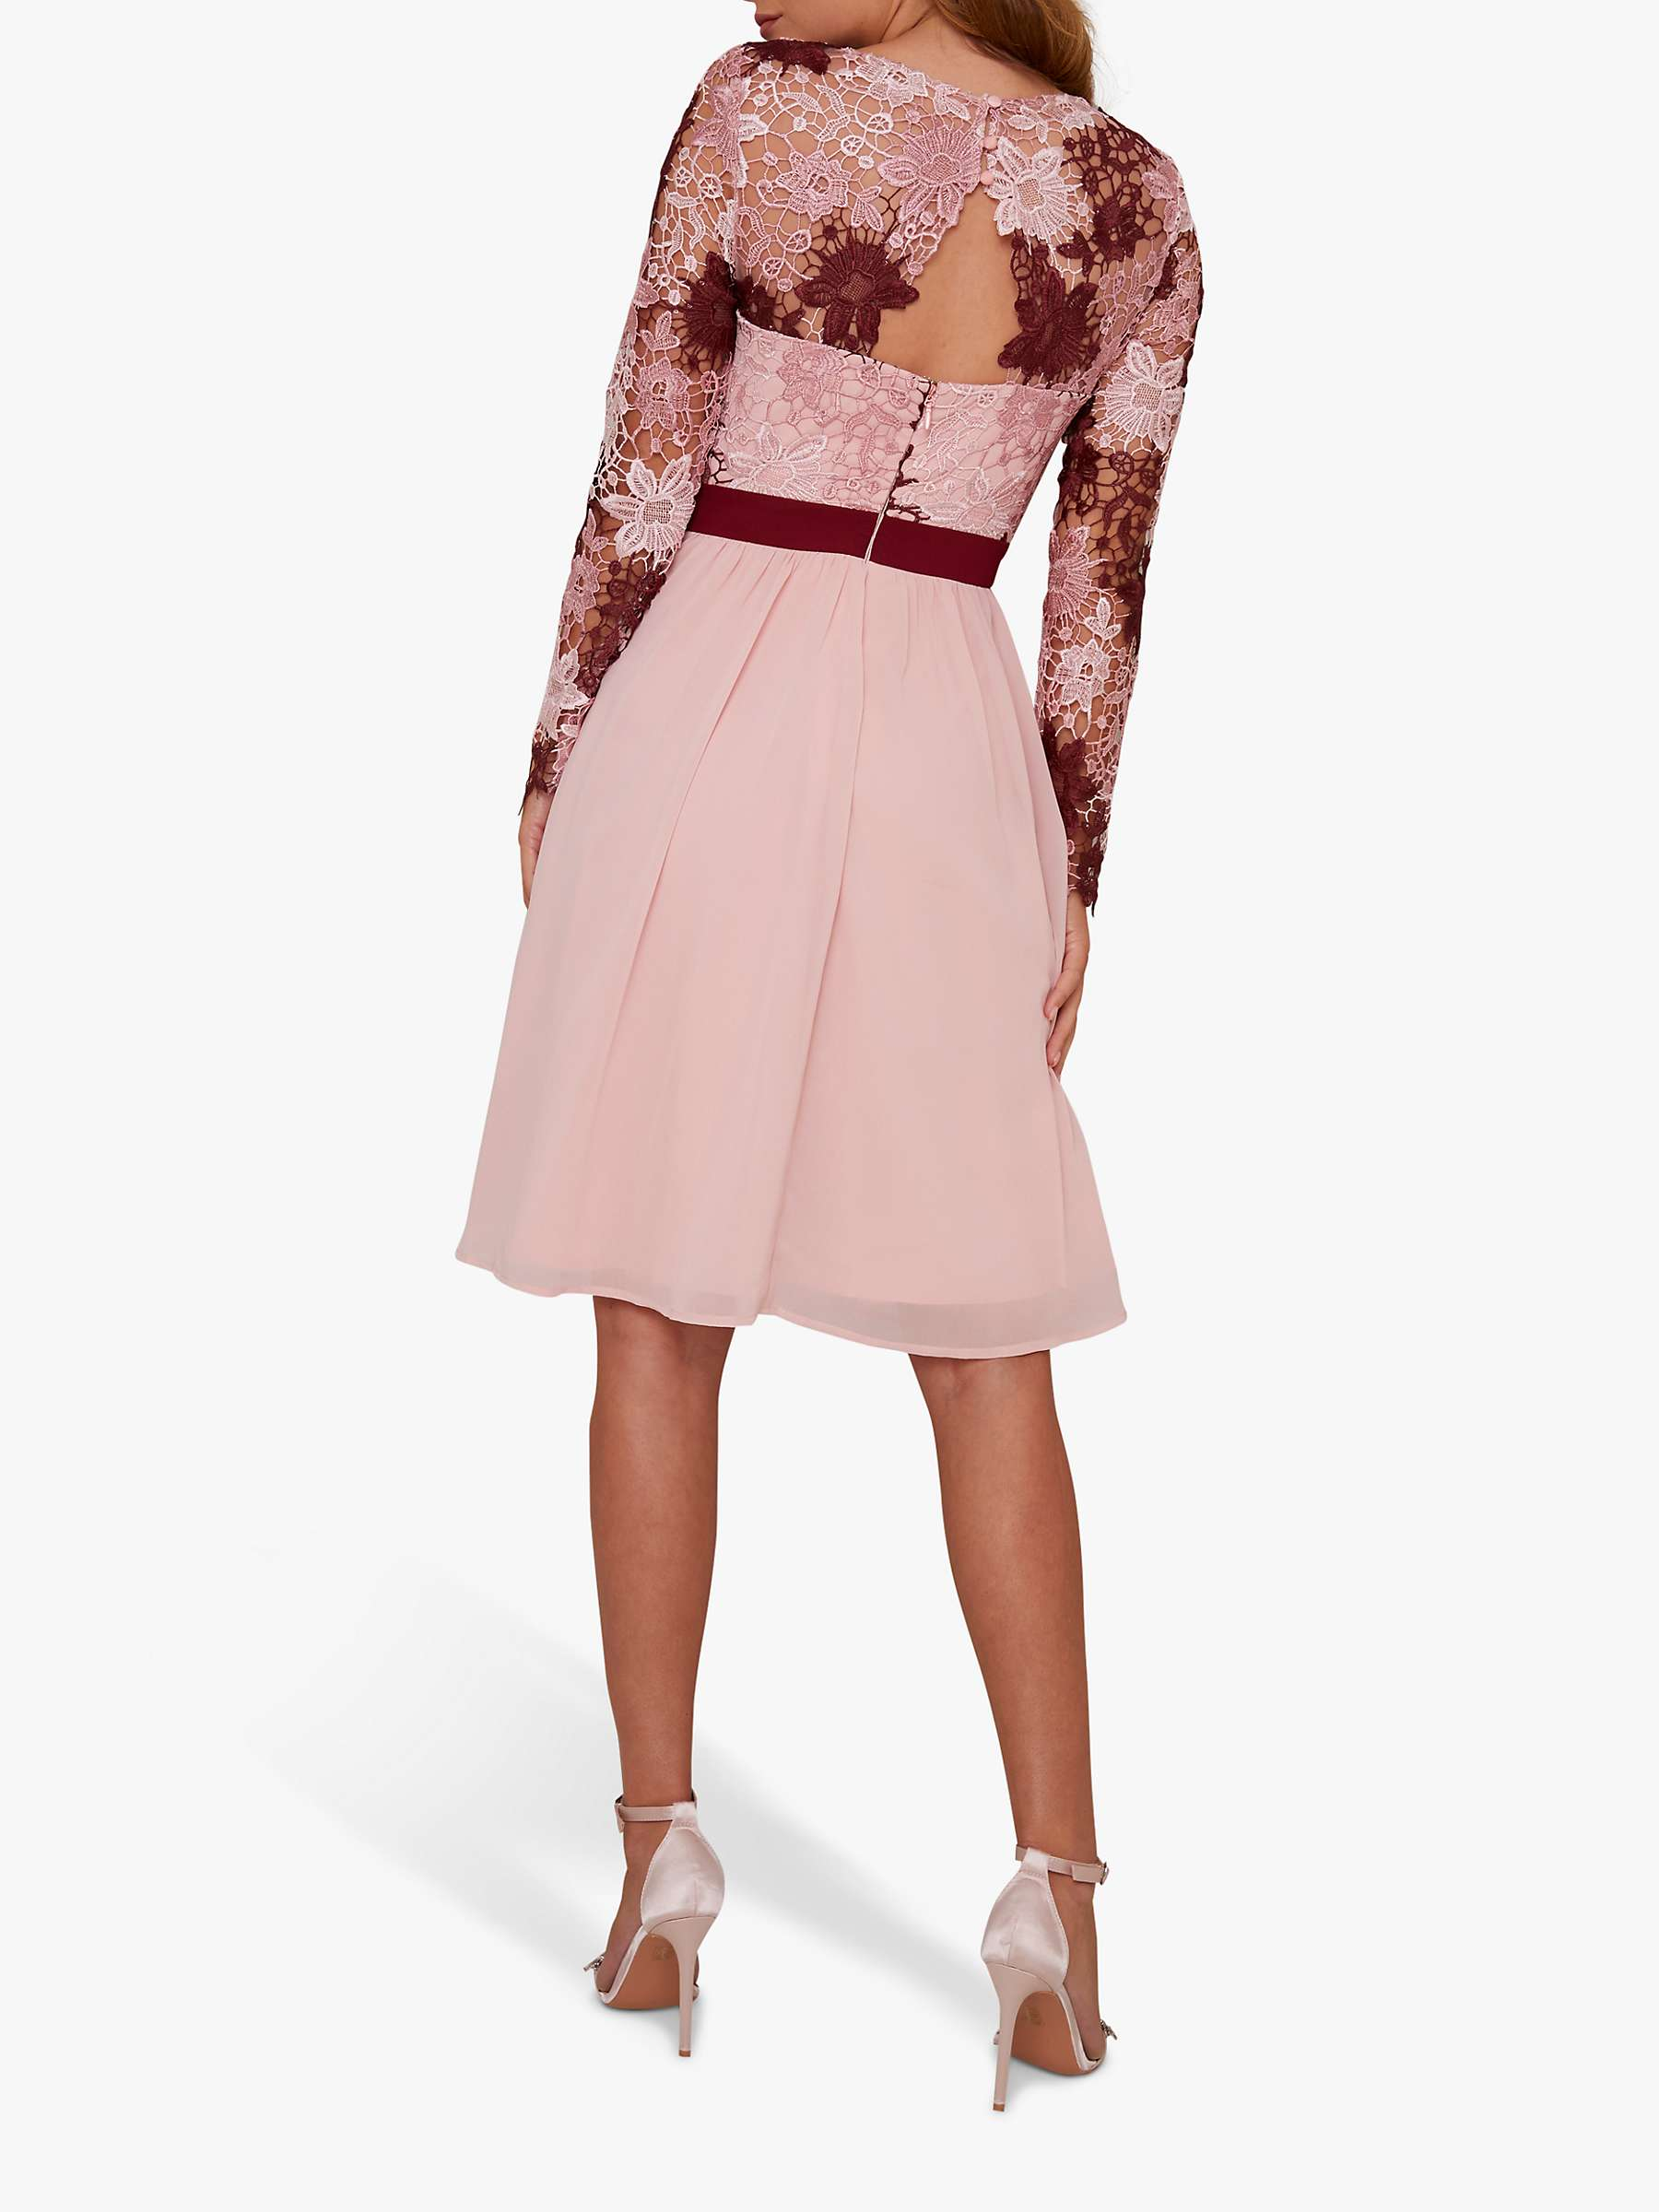 Chi Chi London Sutton Floral Dress Pink Multi At John Lewis Partners